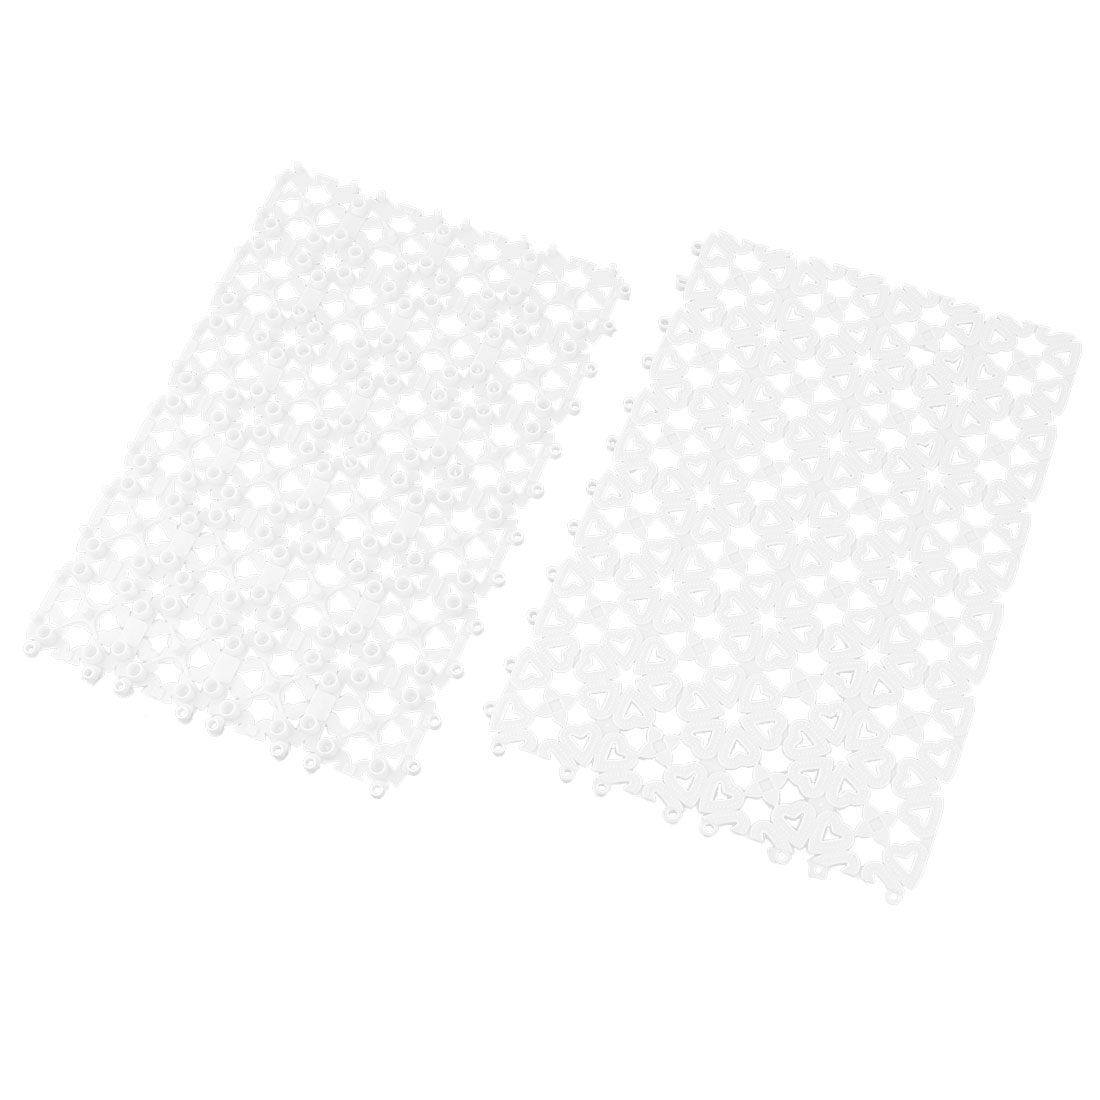 Bathroom Plastic Free Split Joint Water Resistant Anti-slip Shower Bath Mat White 2pcs